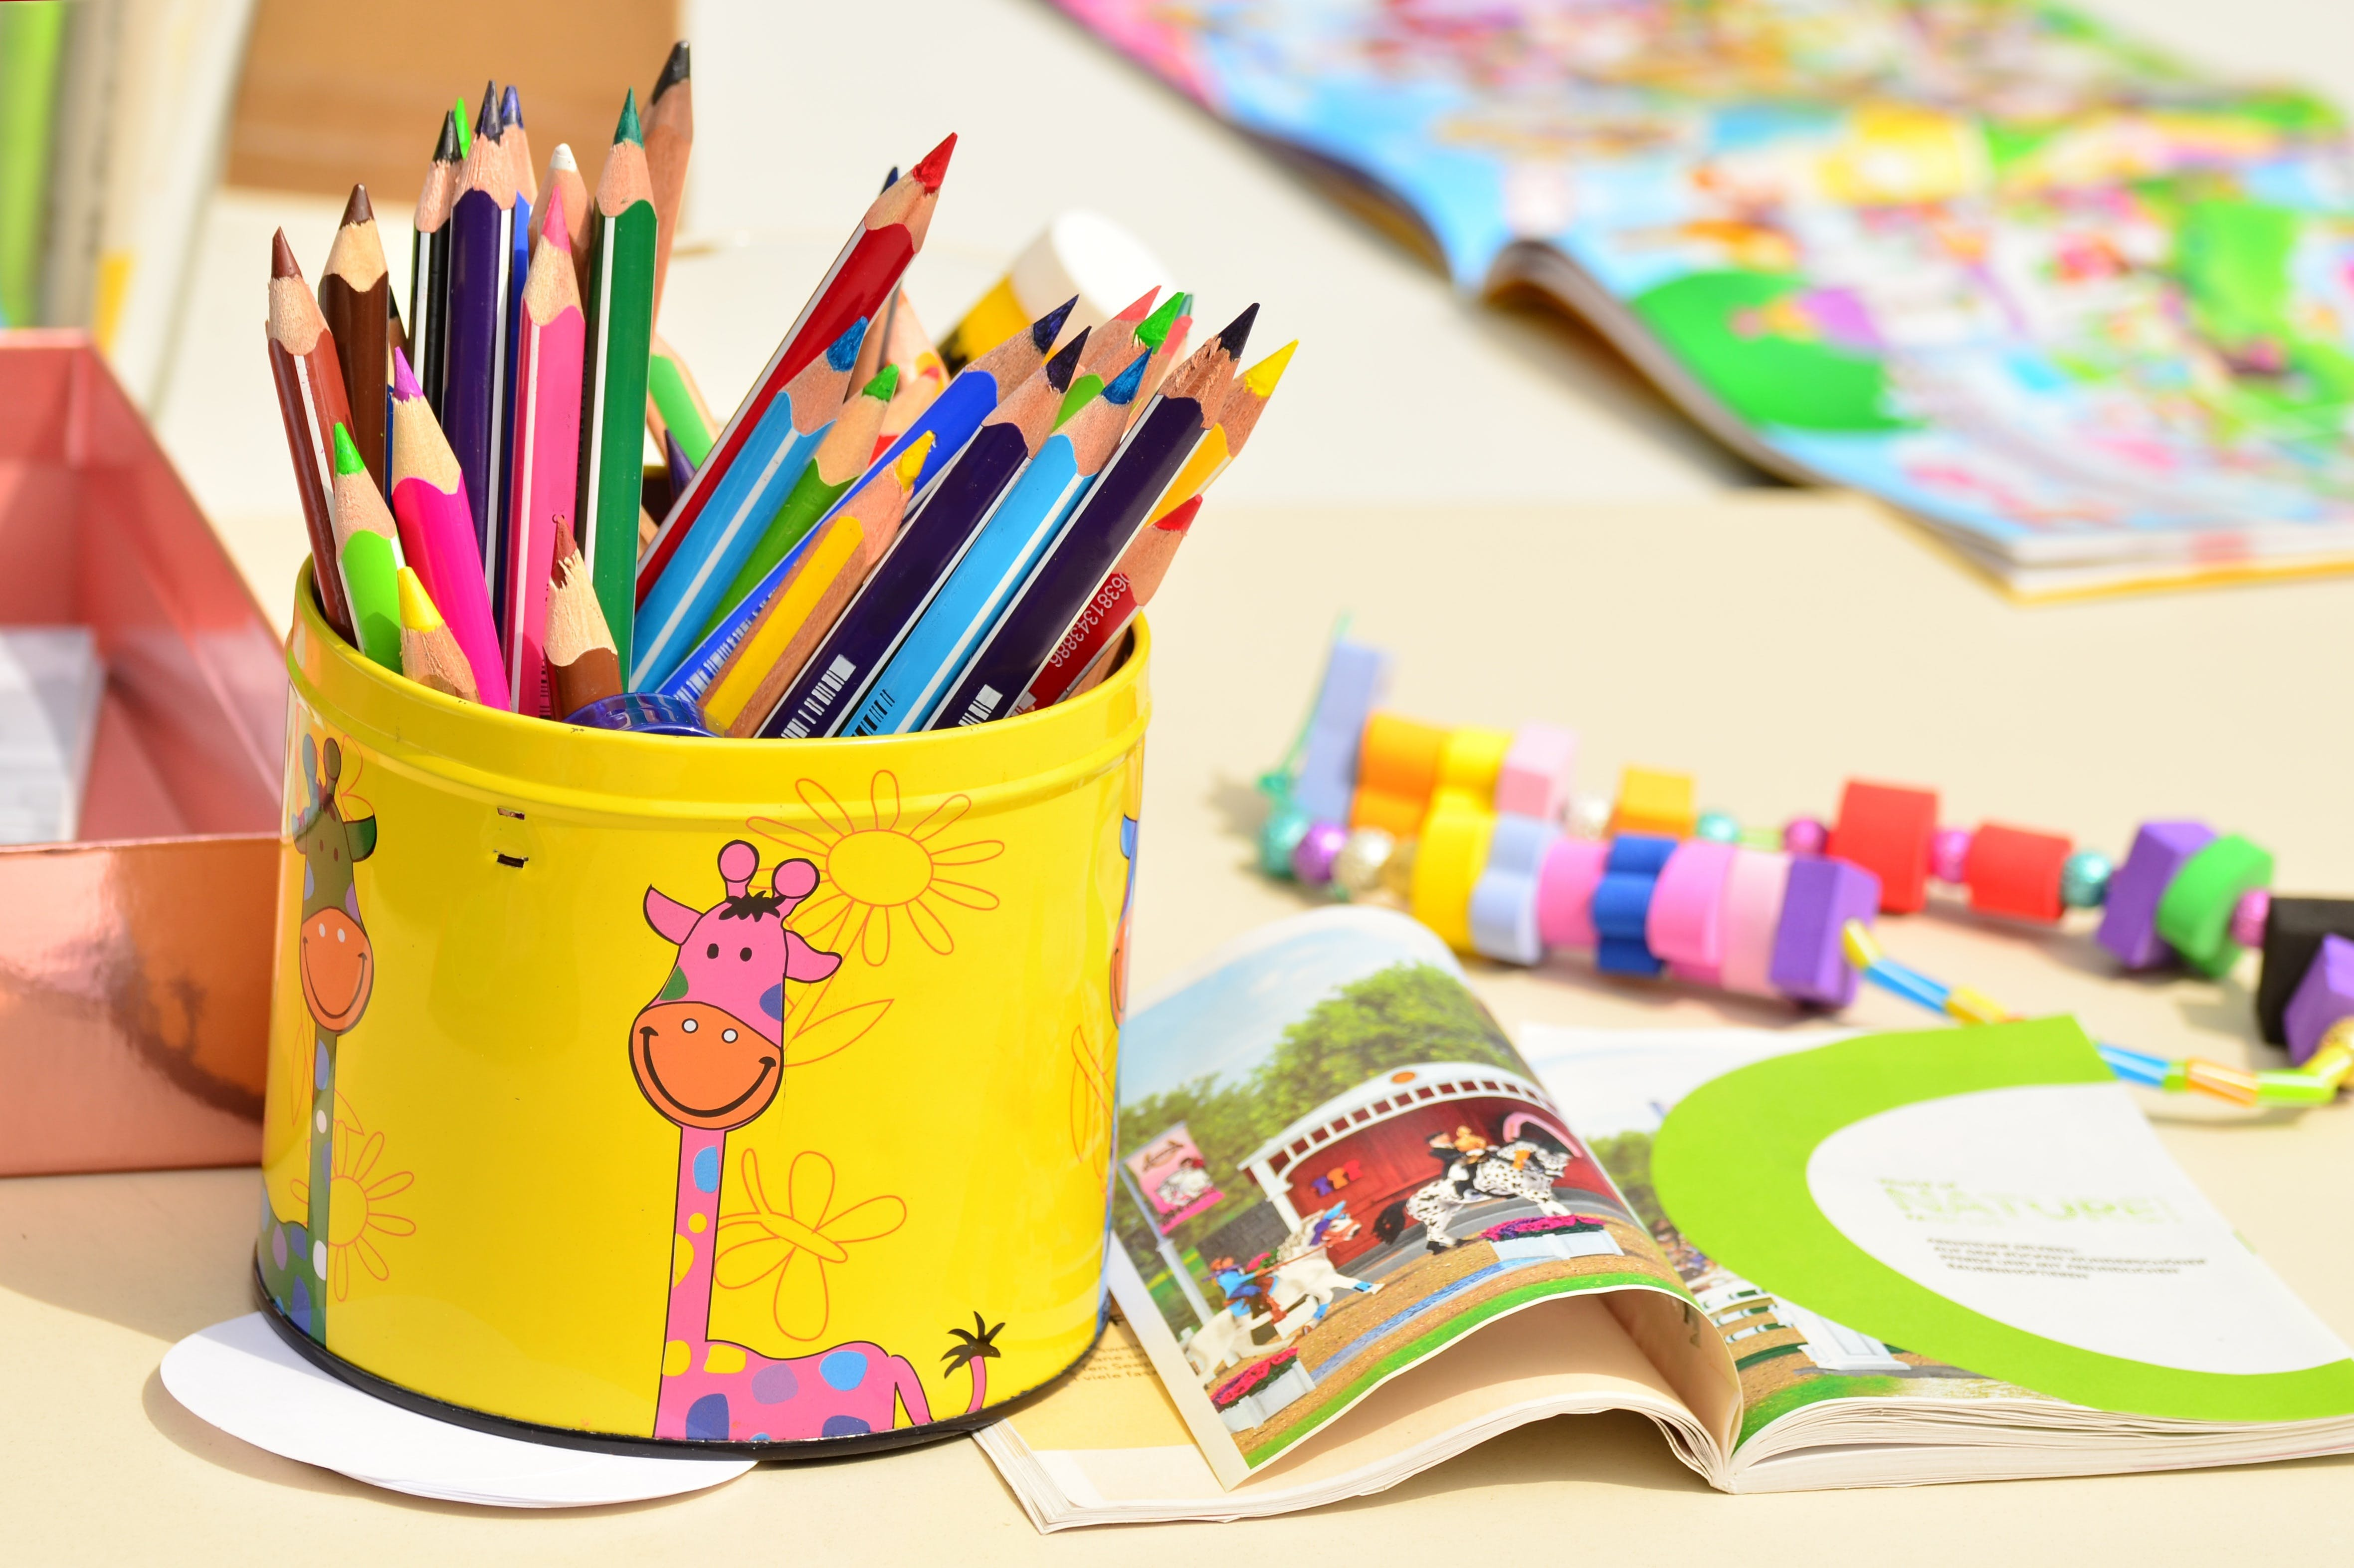 Free stock photo of pens, paint, crayons, colored pencils